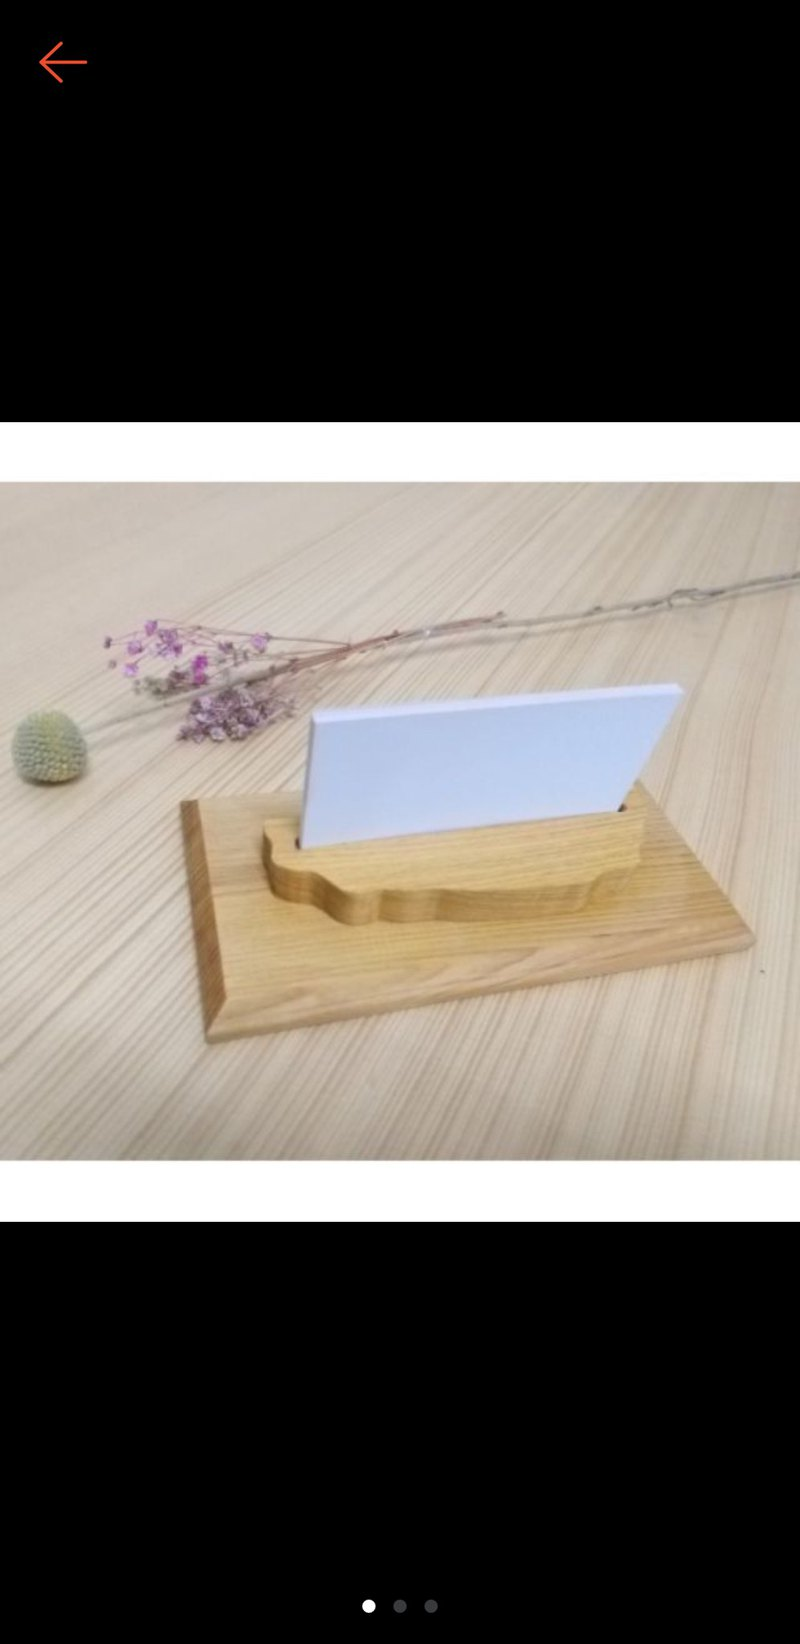 Taiwan Alder wood business card holder with laser engraving 14.8*7.5*2cm